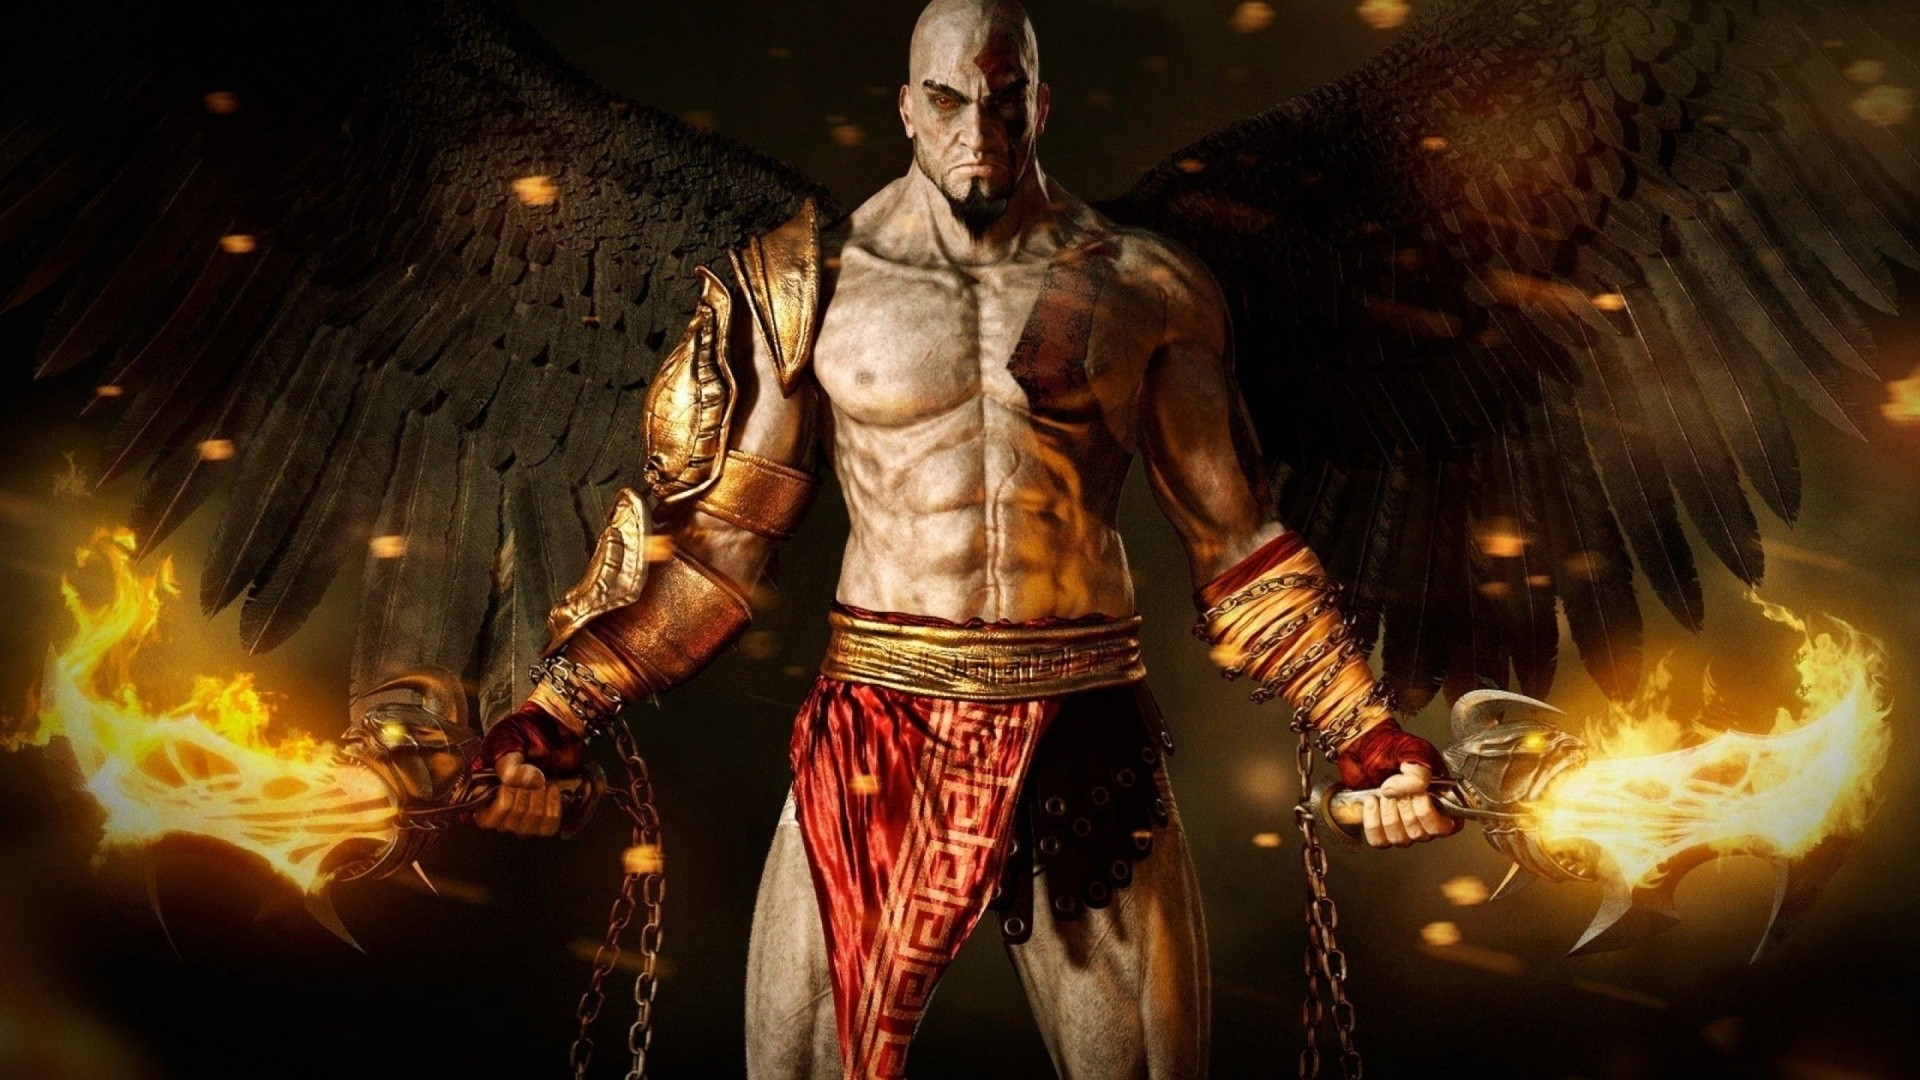 Kratos Wallpaper Image